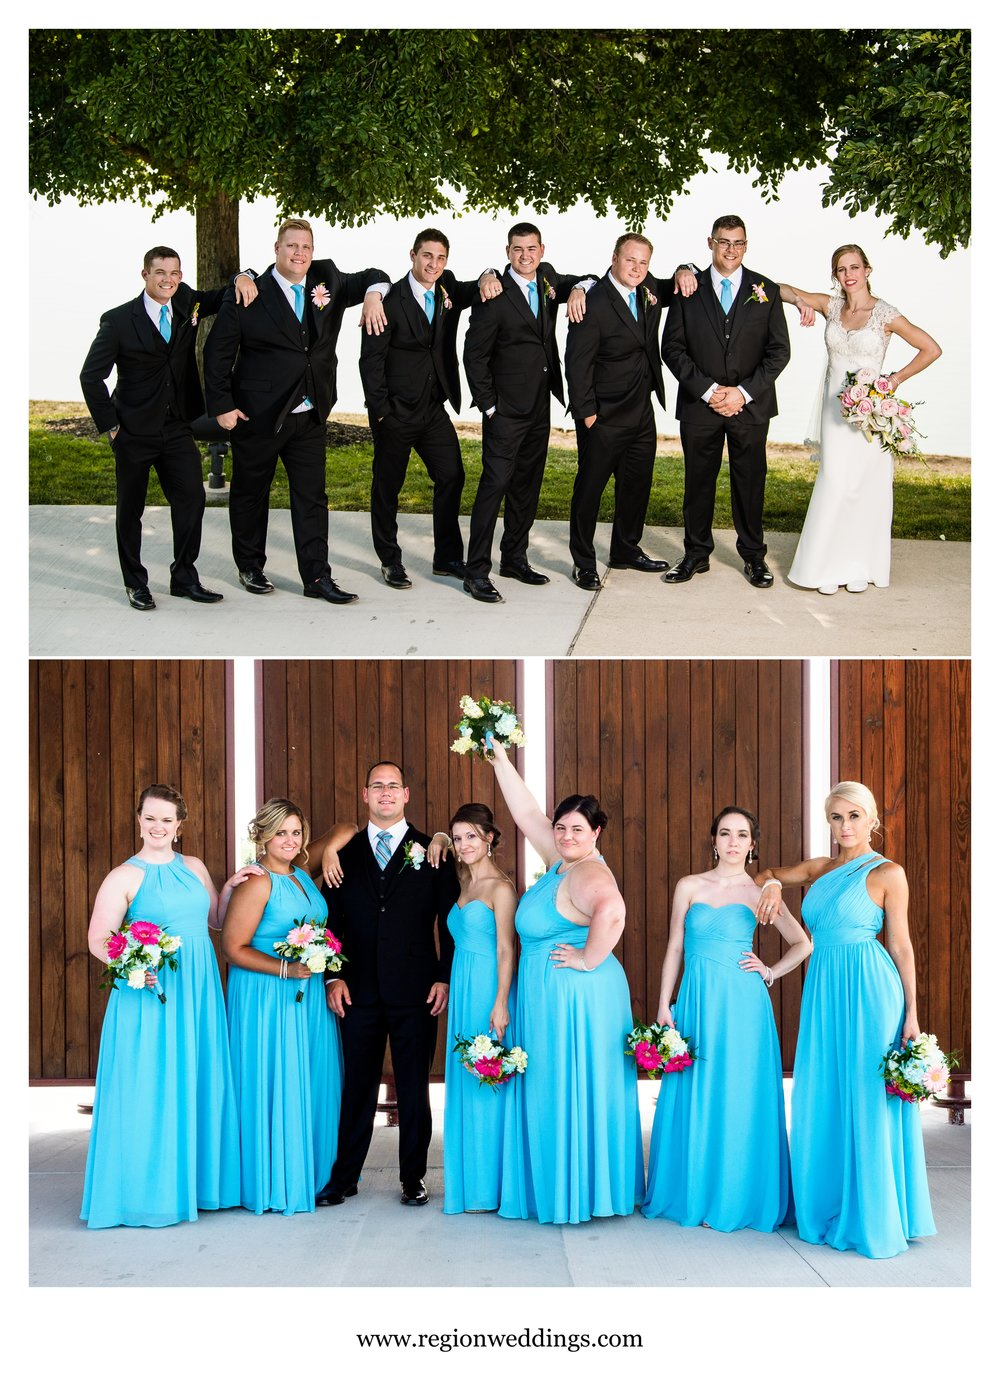 Bride with groomsmen and groom with bridesmaids.